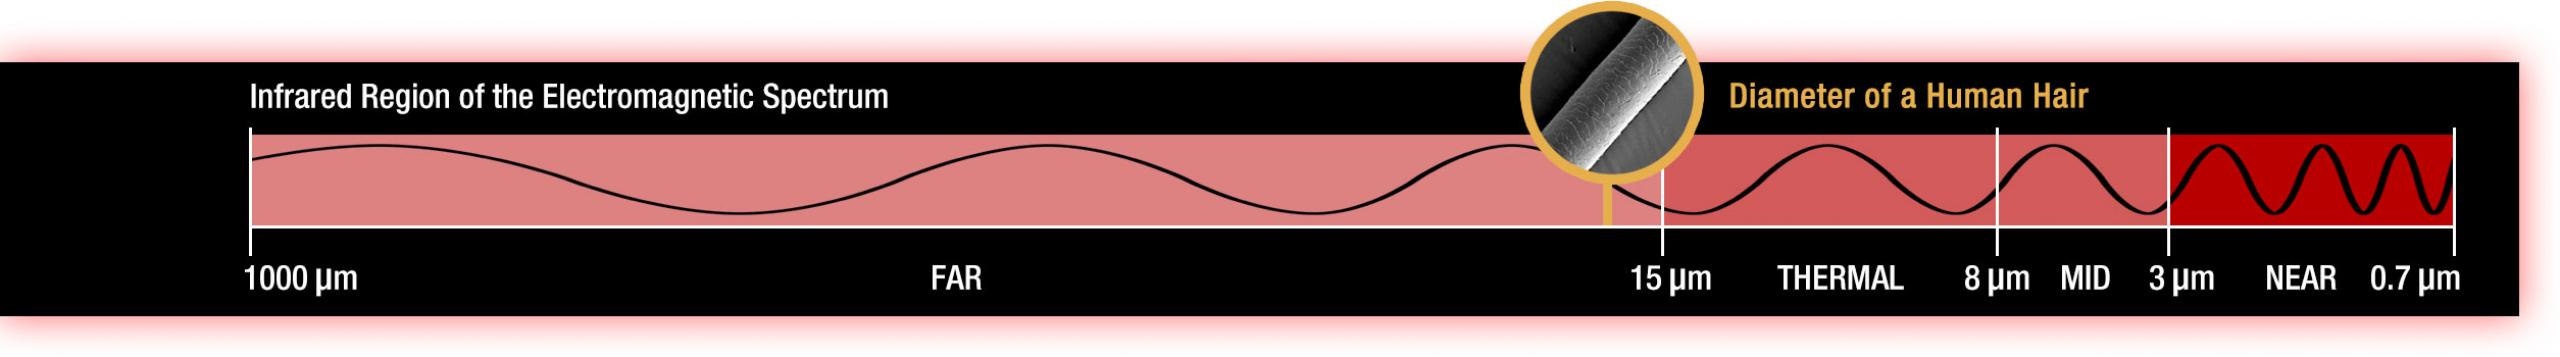 Illustration of an infrared wave on the electromagnetic spectrum